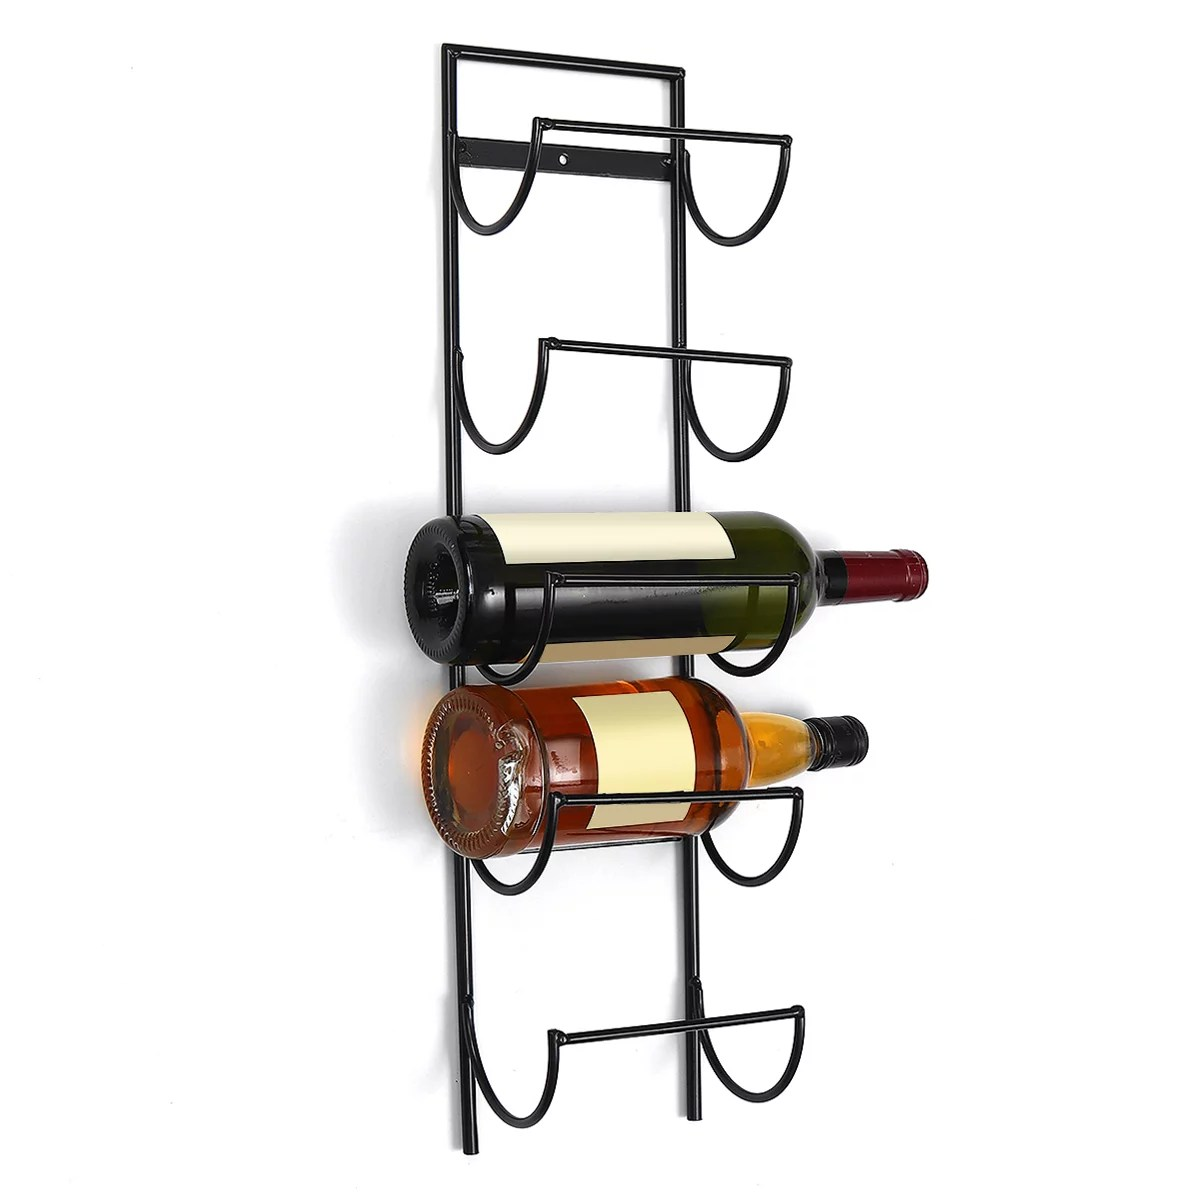 metal wall hanging wine rack wall mounted wine bottle display hold storage organizer home decorative holds 5 bottles